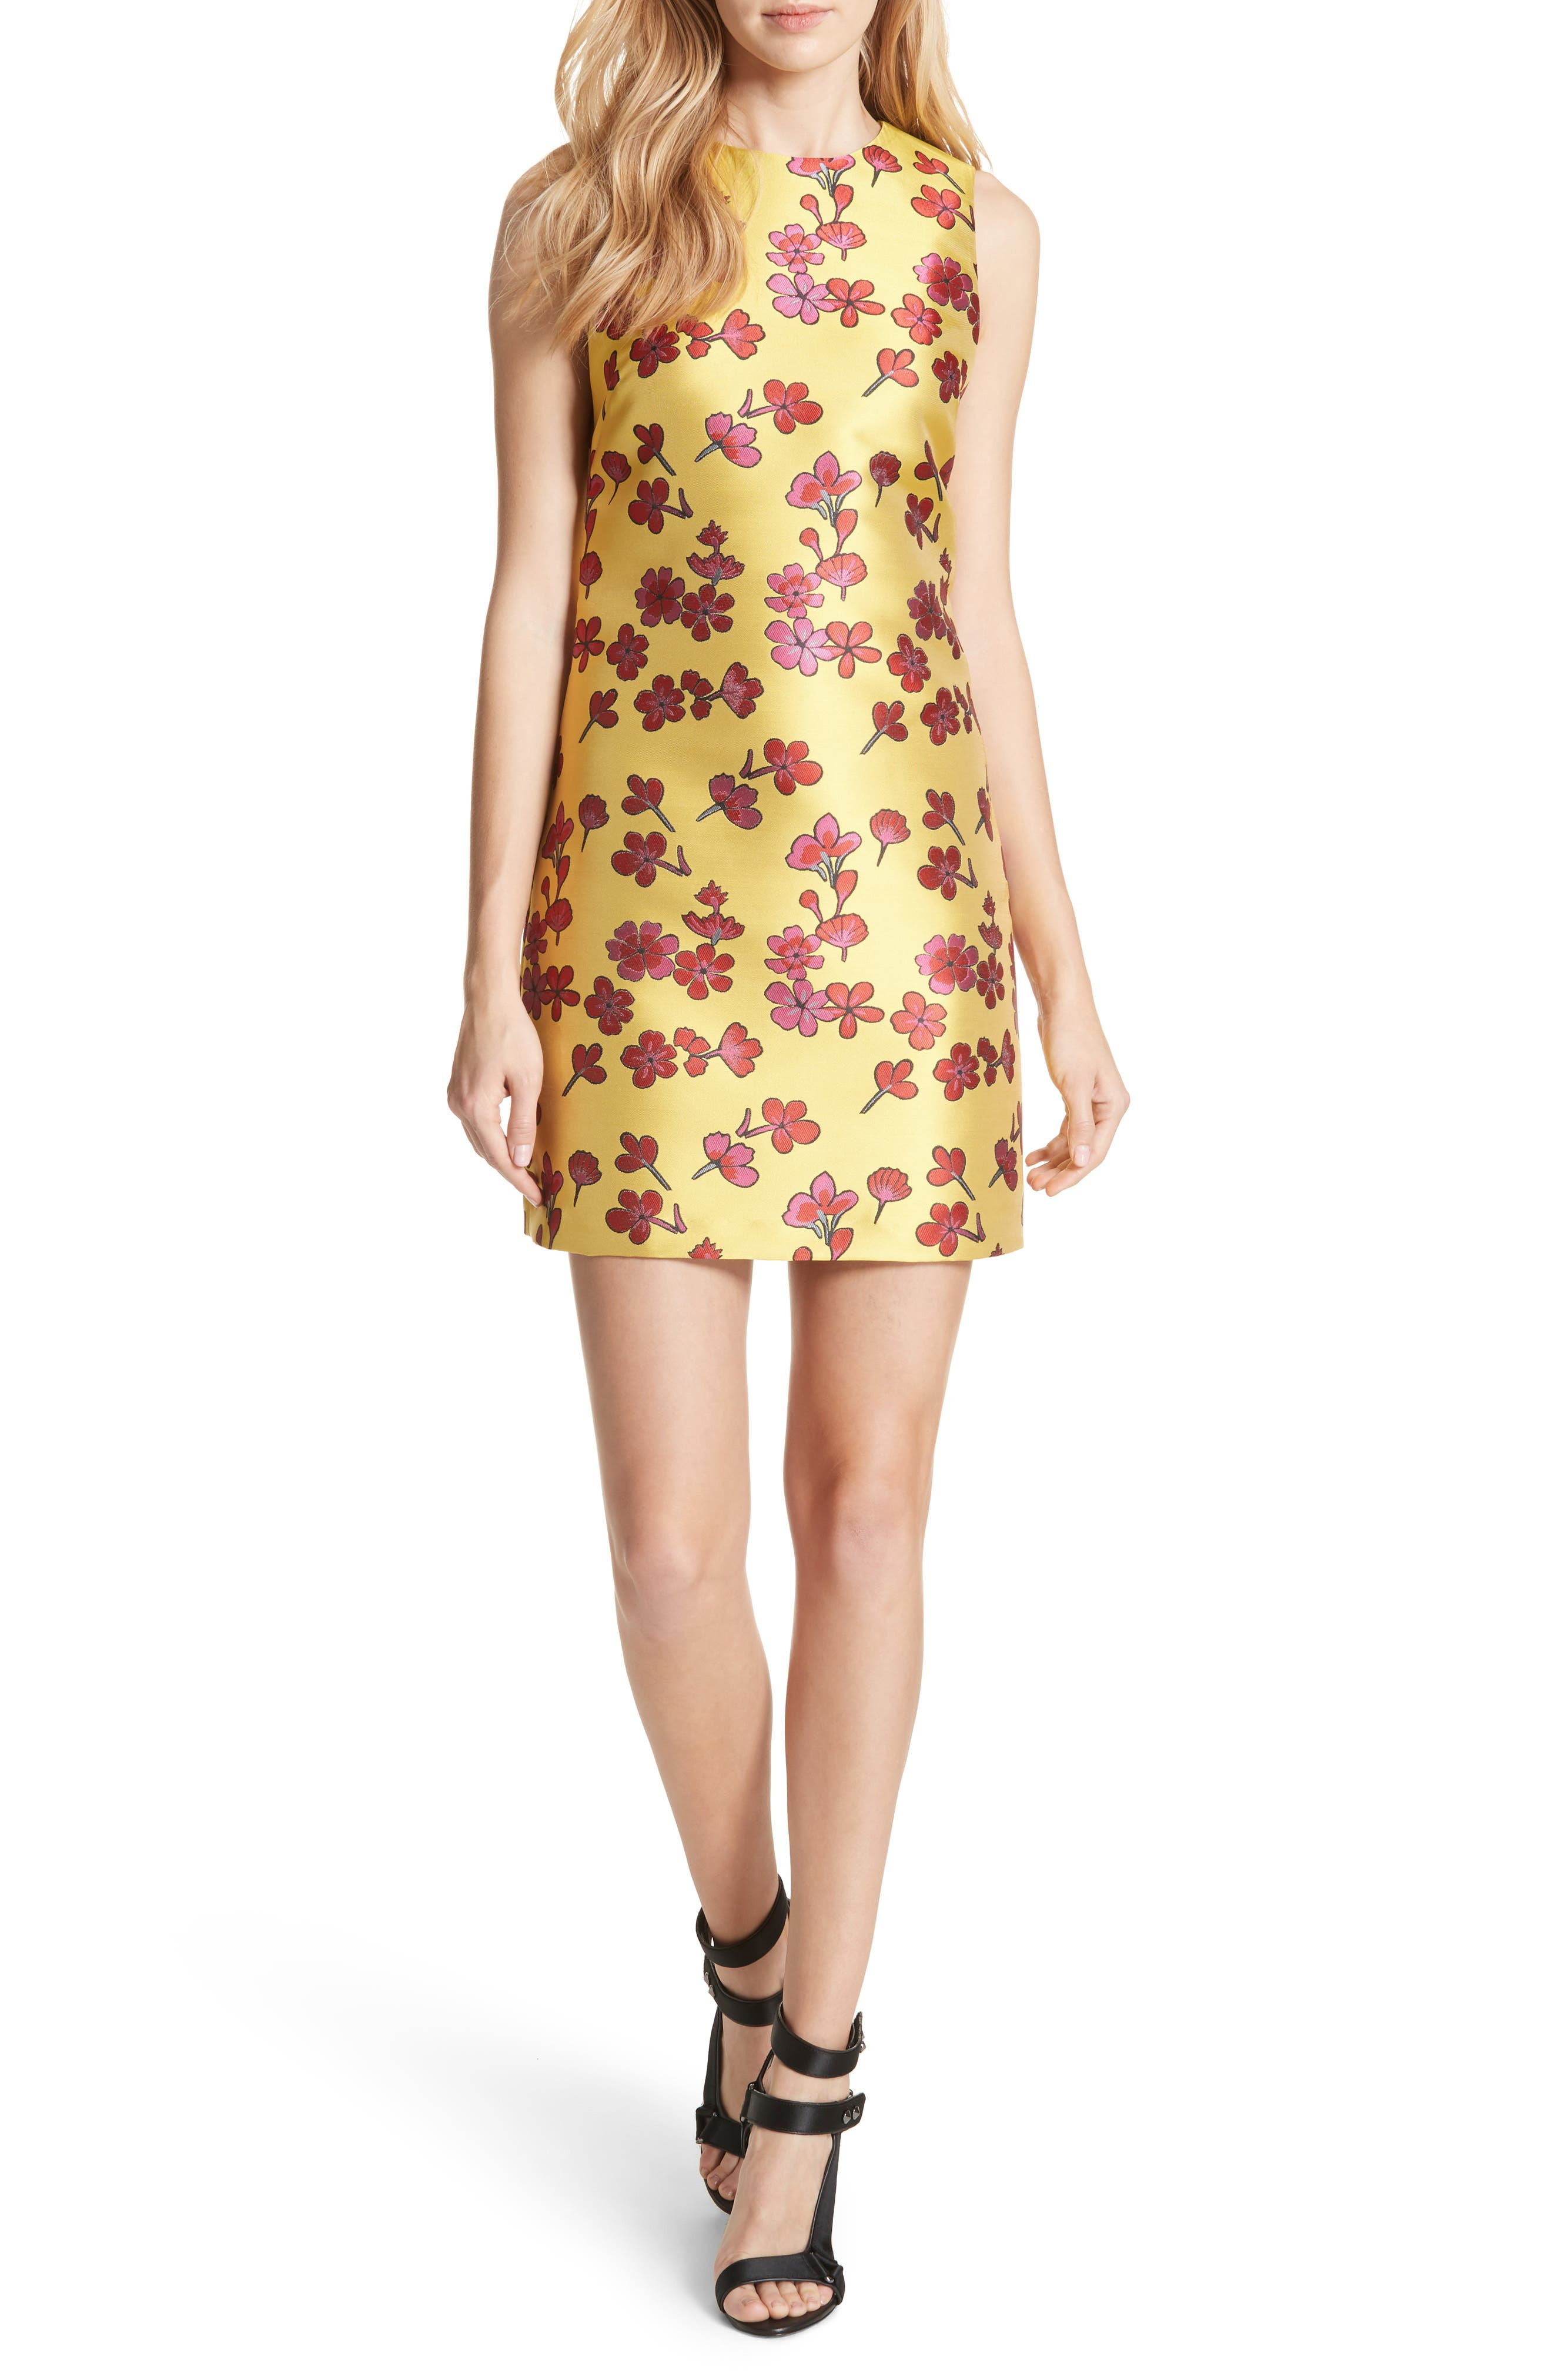 Coley Floral A-Line Shift Dress,                             Main thumbnail 1, color,                             Sunflower/ Poppy